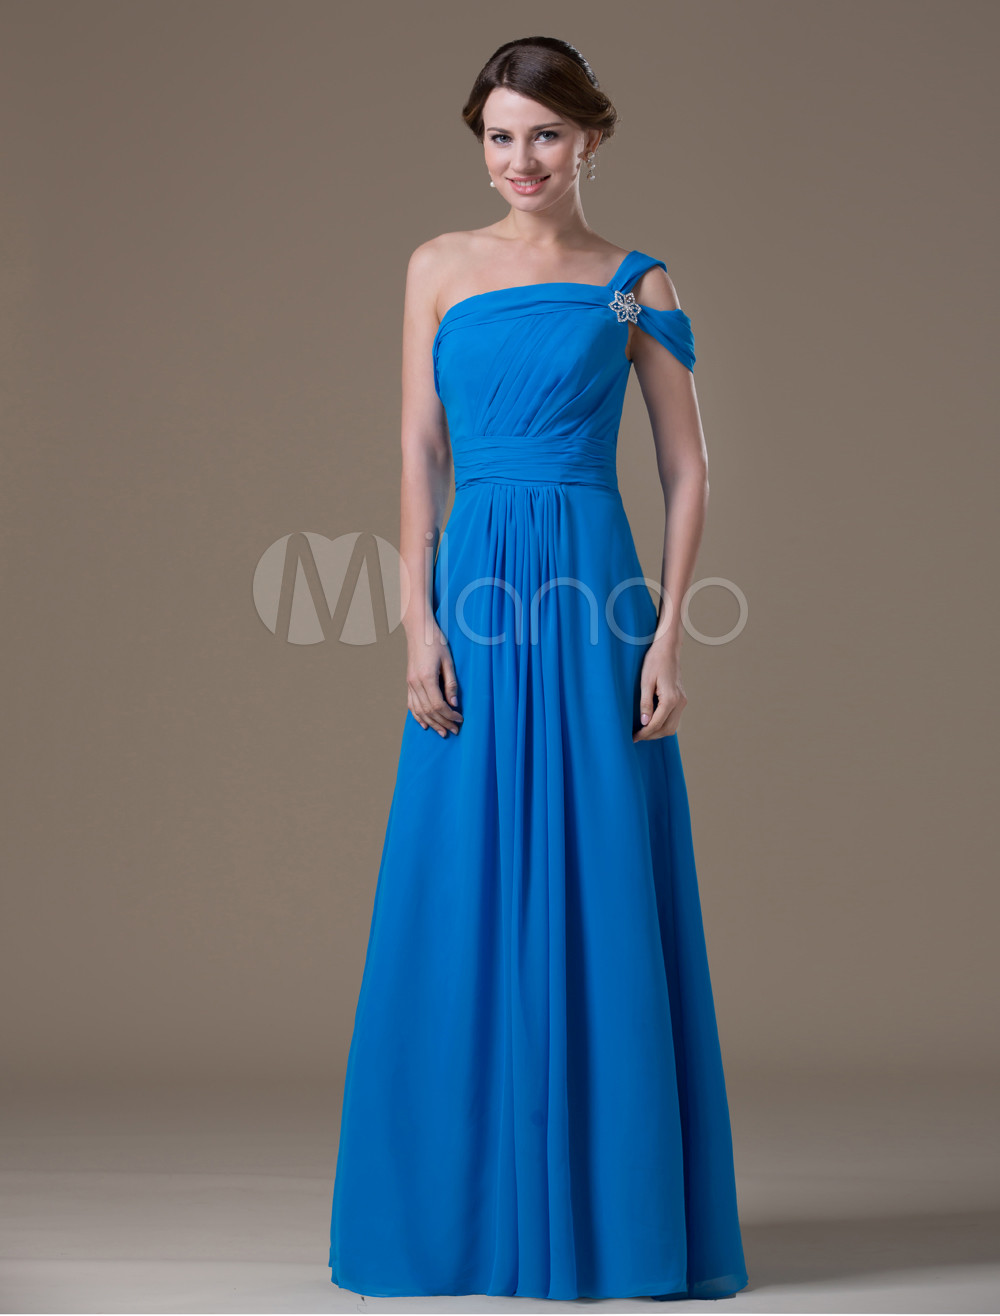 Royal Blue Chiffon One Shoulder Maternity Bridesmaid Dress